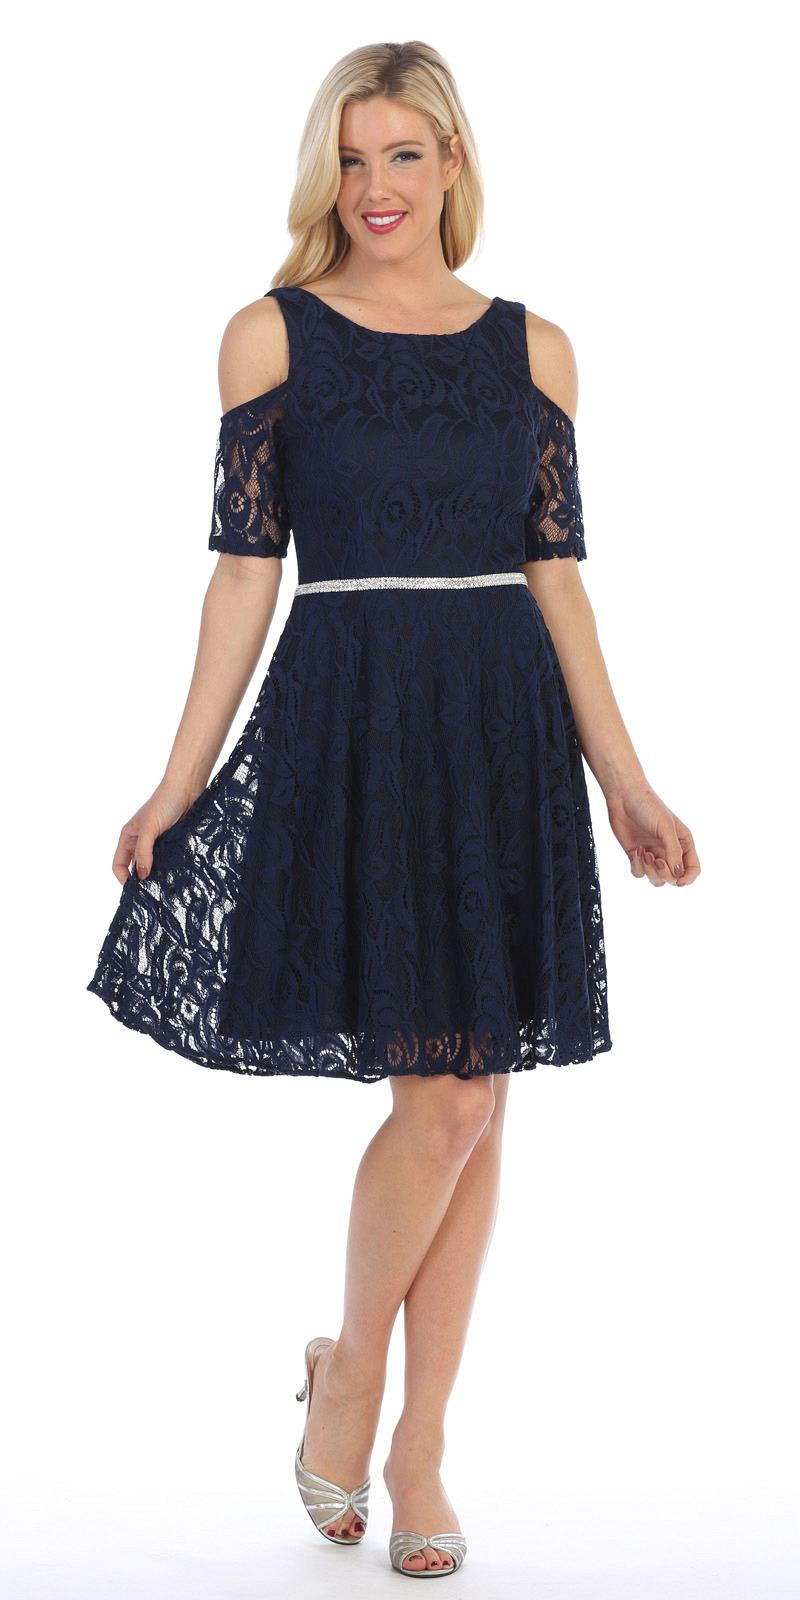 Wedding Guest Dresses With Sleeves.Navy Lace A Line Wedding Guest Dress Cold Shoulder Short Sleeves